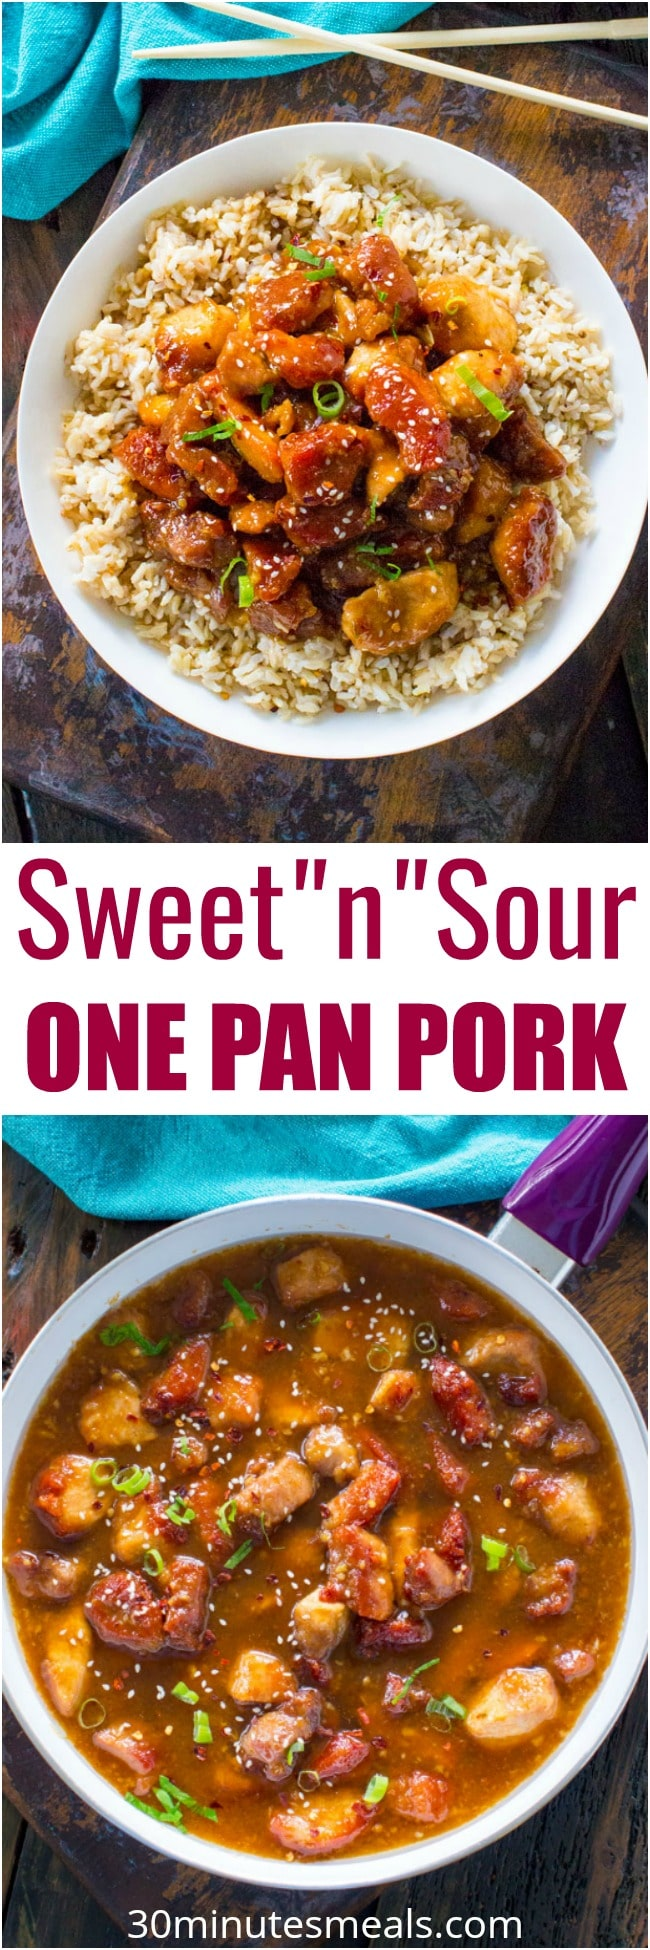 Sweet and Sour Pork is a restaurant quality meal that can be easily made at home in one pan. Crispy, sweet, sour and made with budget friendly ingredients.